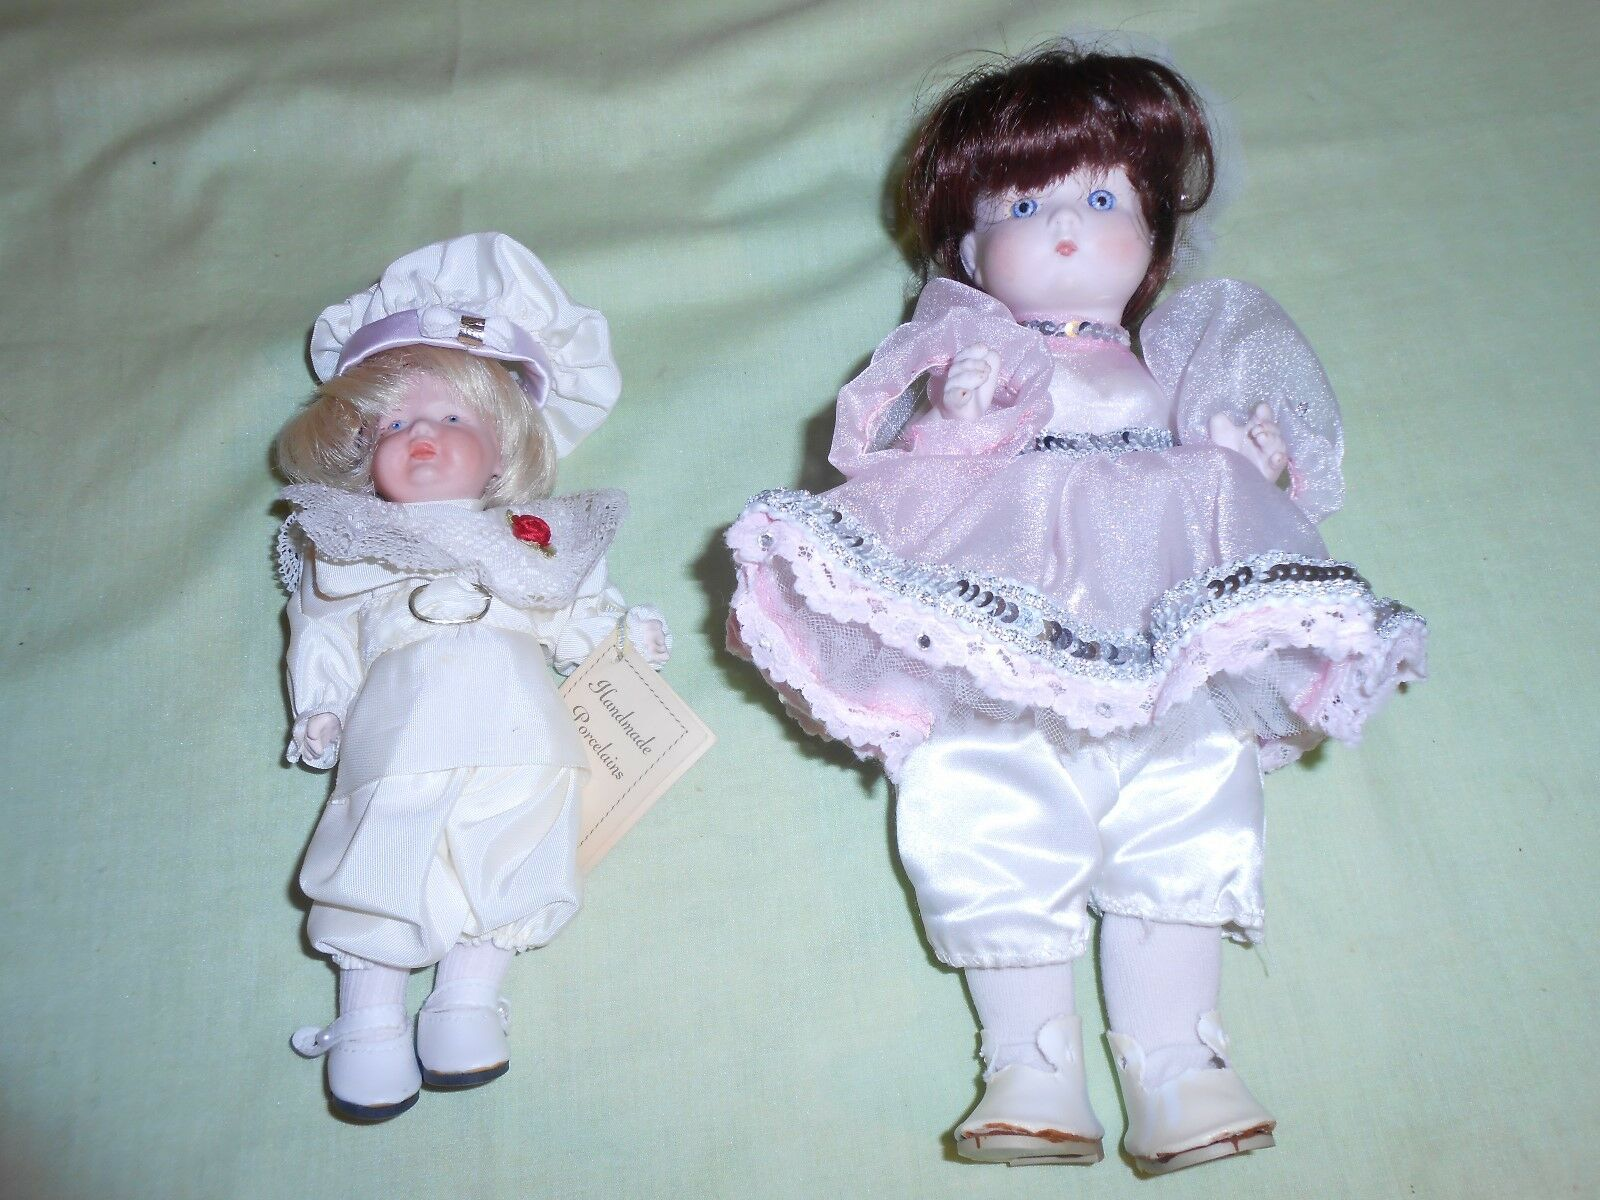 2 Handmade Porcelain Dolls, signed J. Lewis.  From Hummel Gift Shop